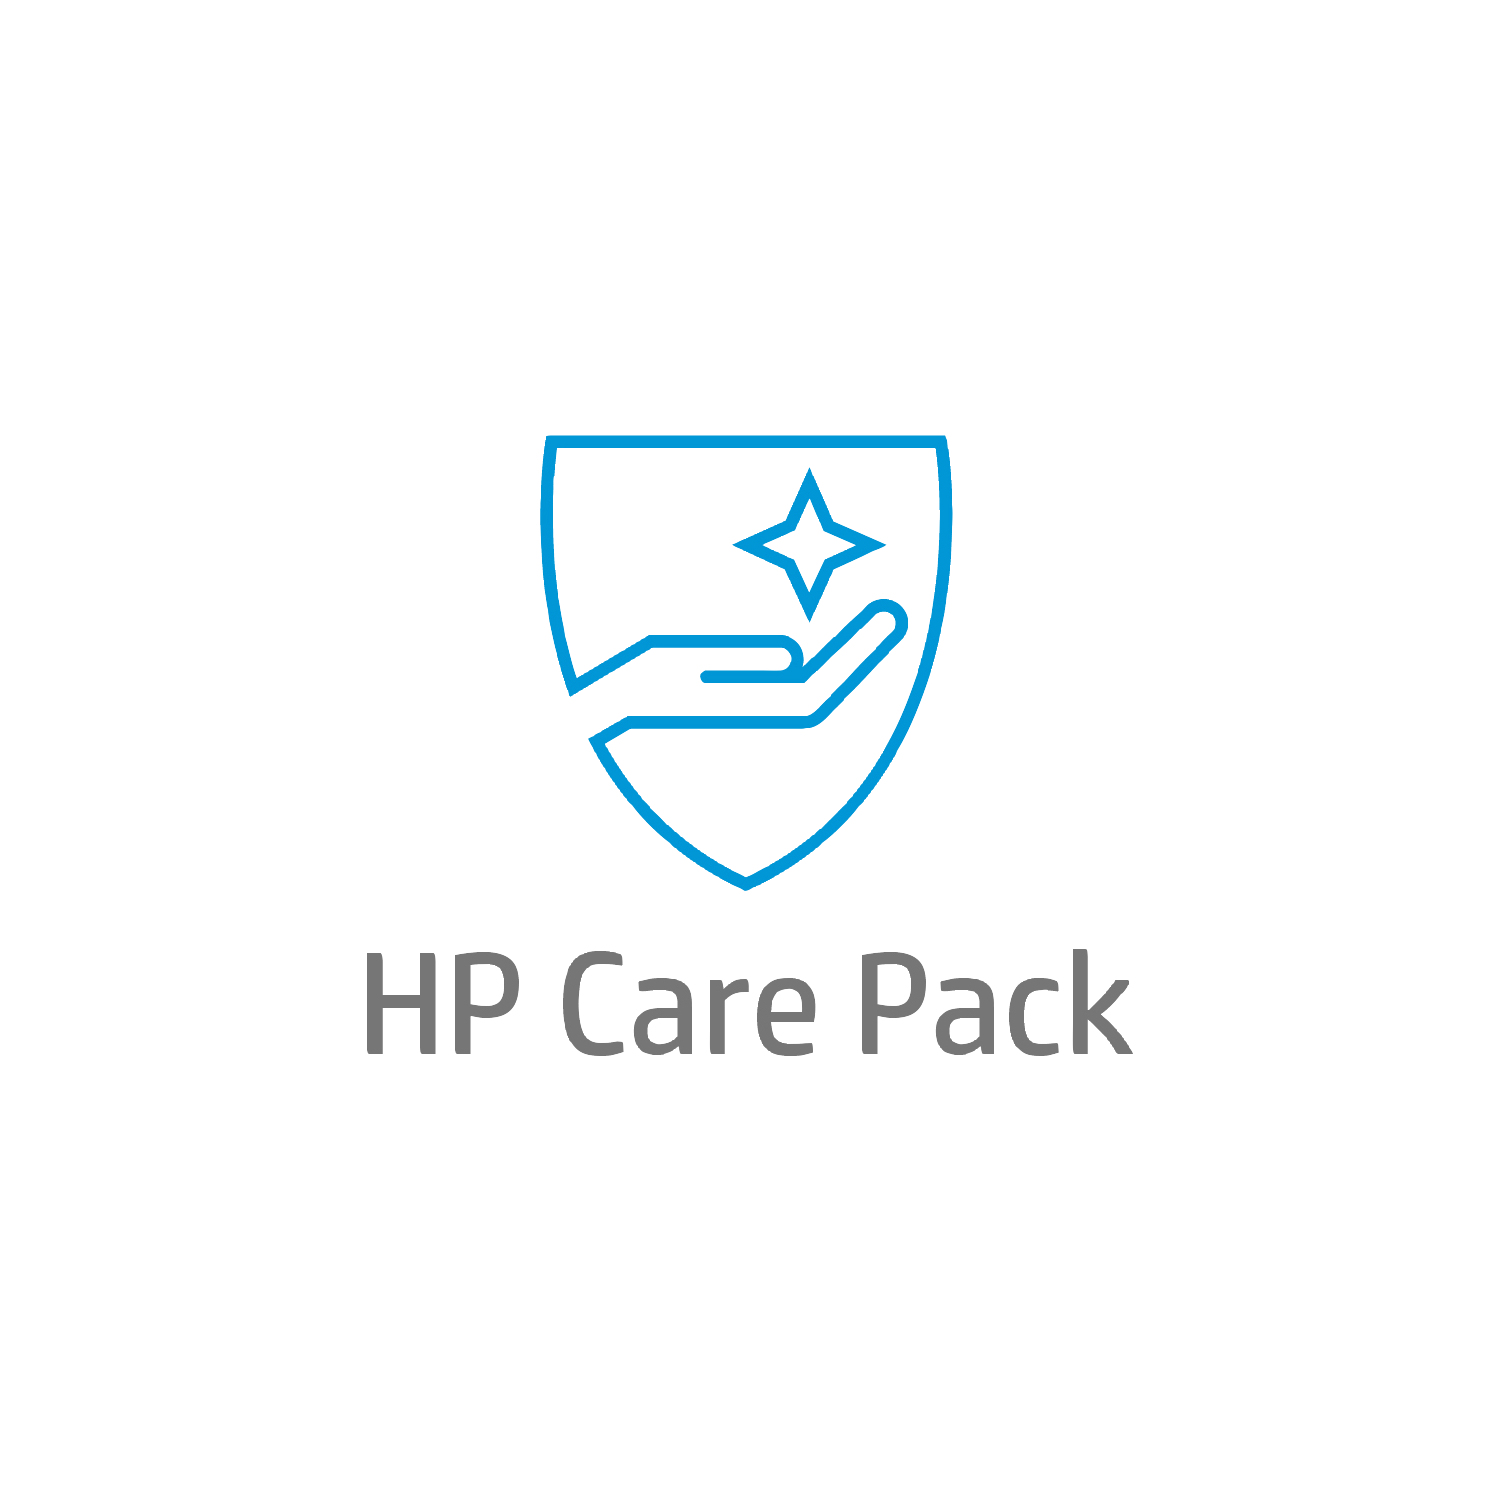 HP 2 Year Absolute Resilience - 2500-9999 Unit Volume Service